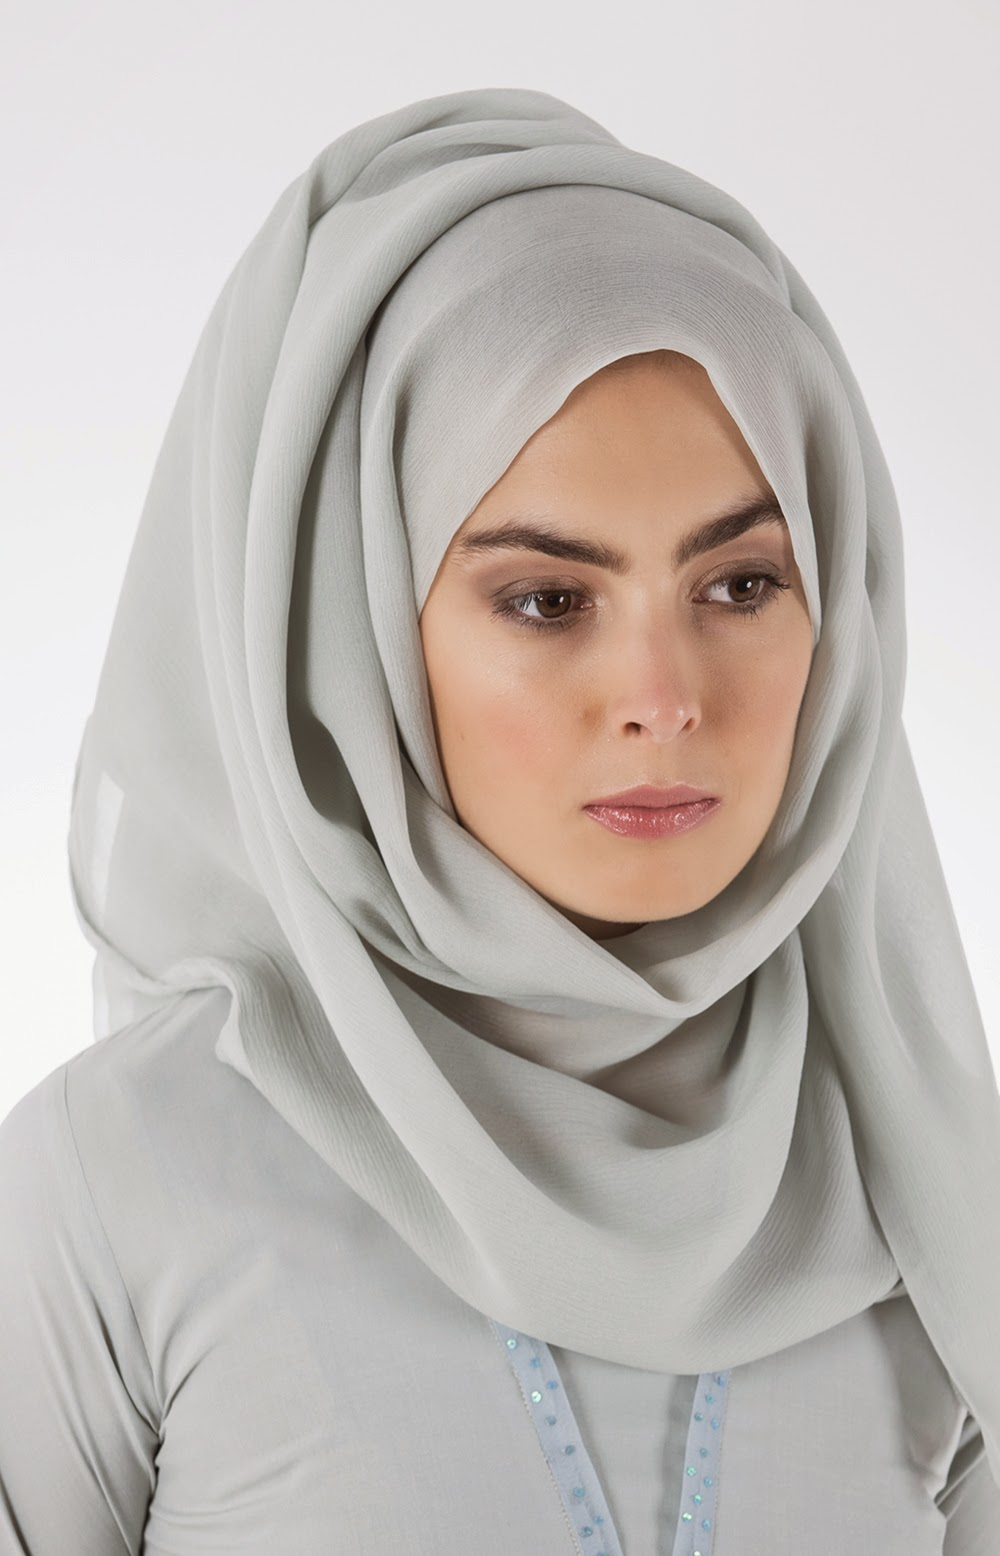 New Hijab Fashion 2014 Hijab Styles